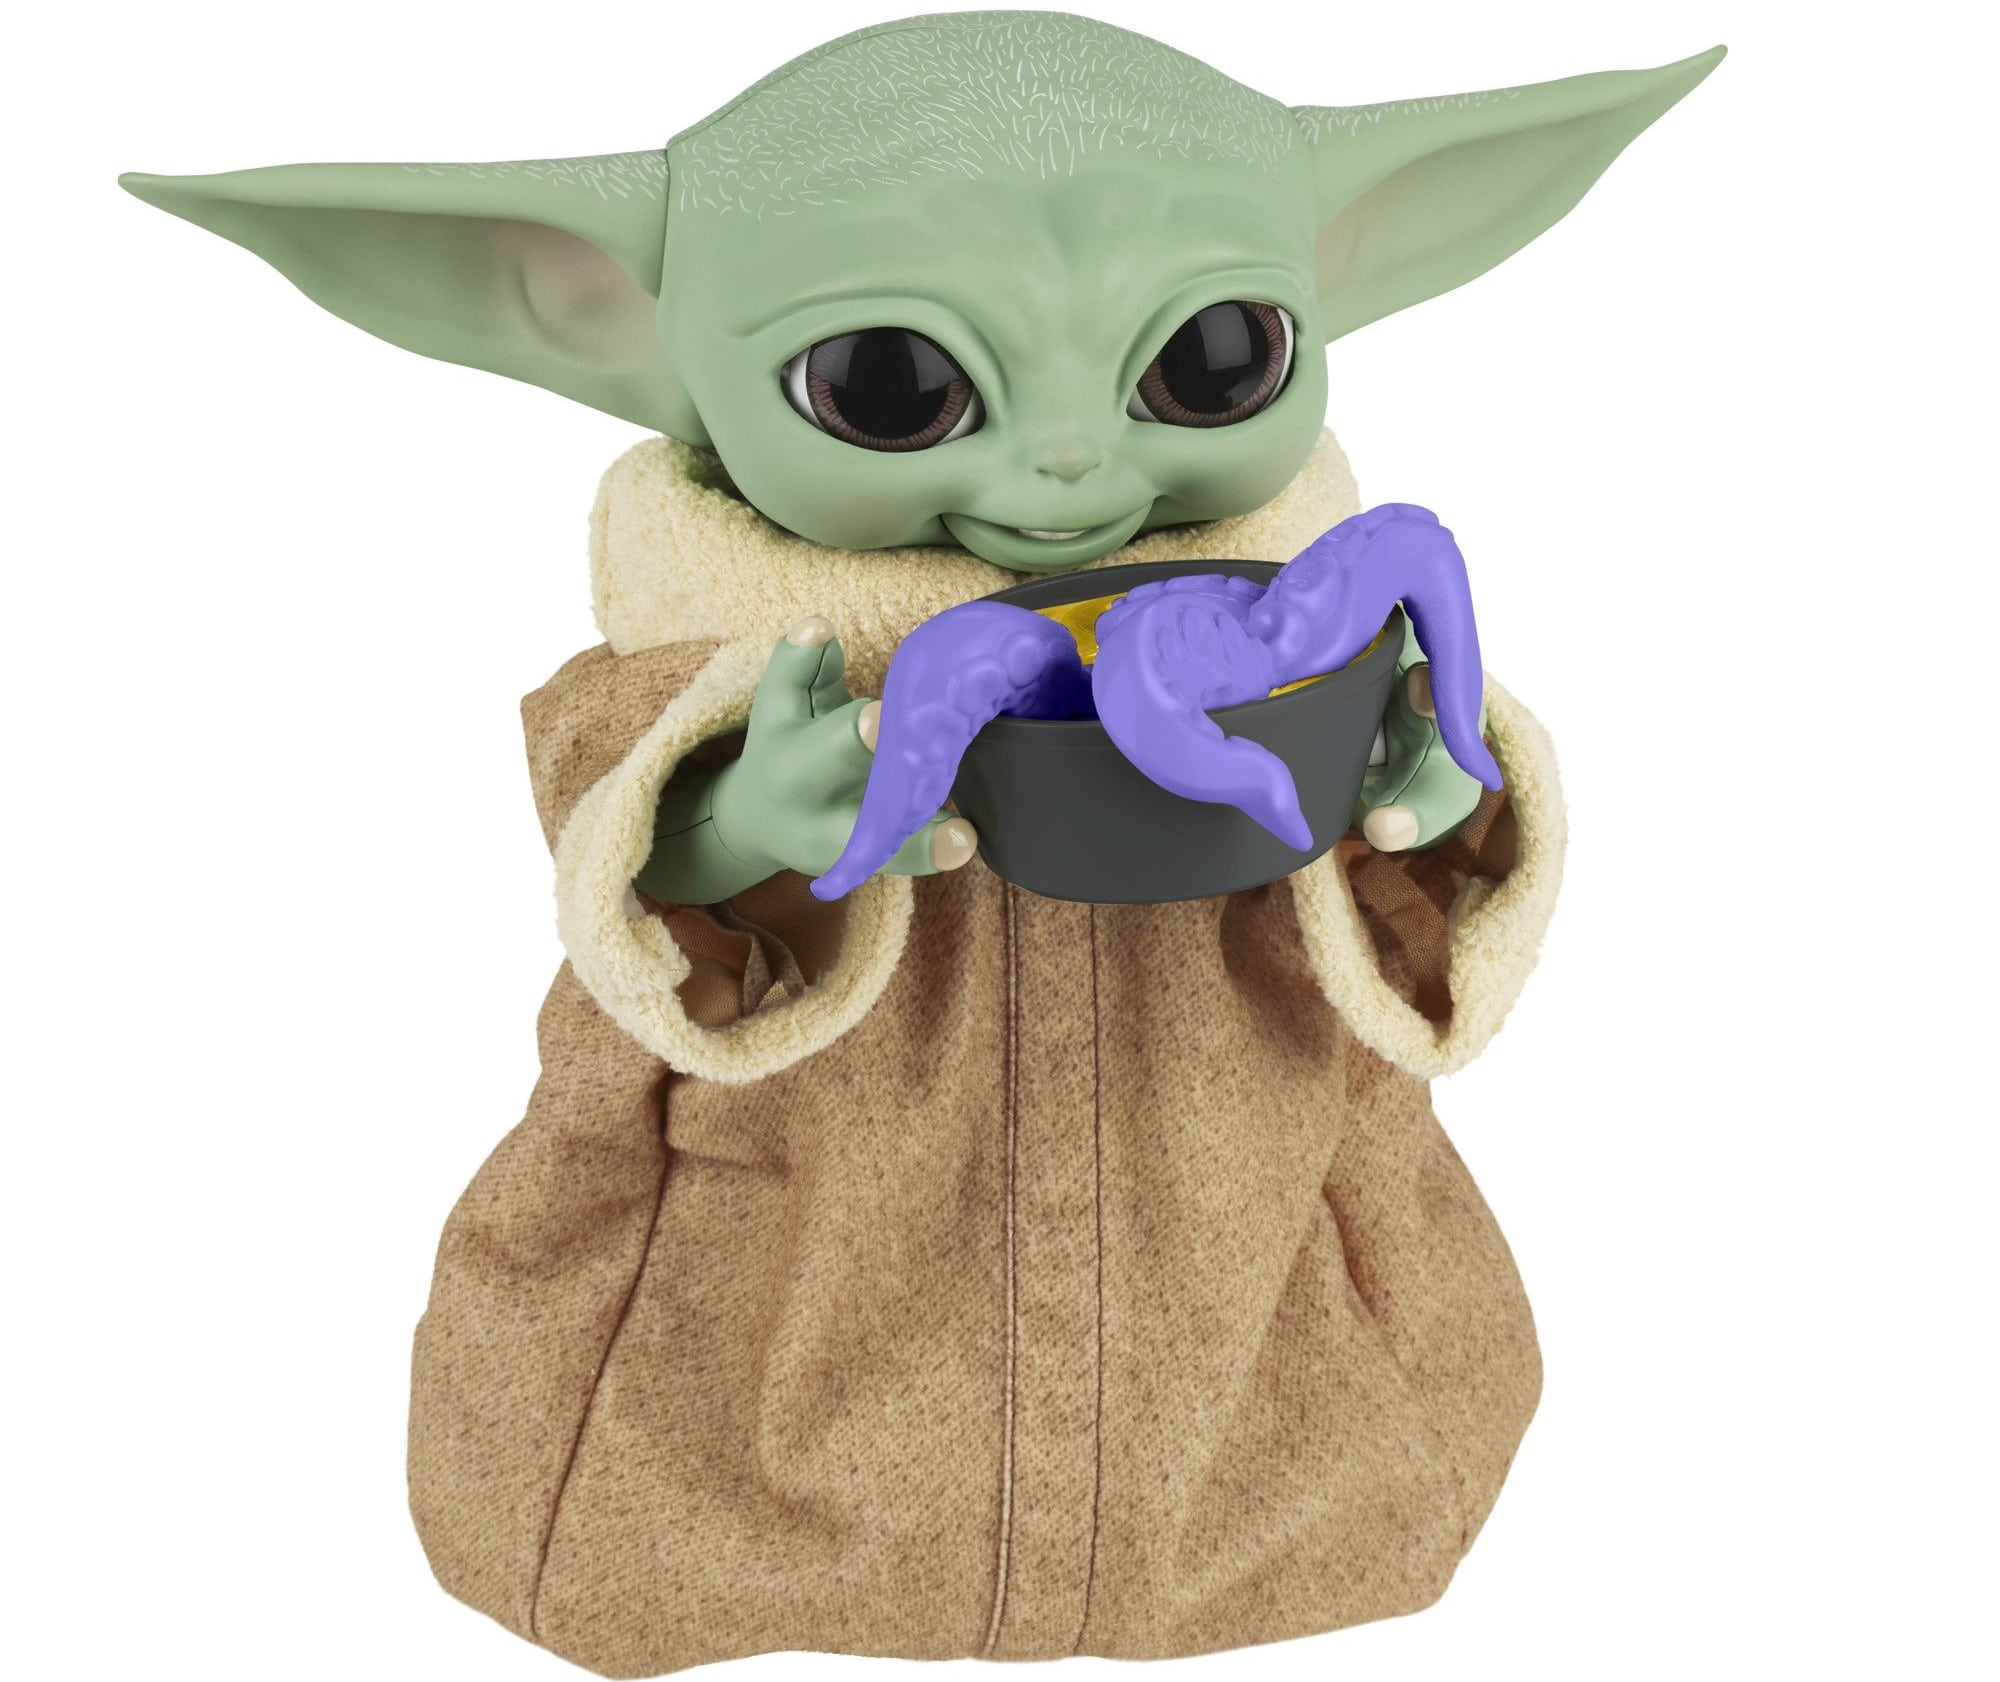 Hasbro's new Baby Yoda animatronic toy is inspired by Grogu's love for snacking 17